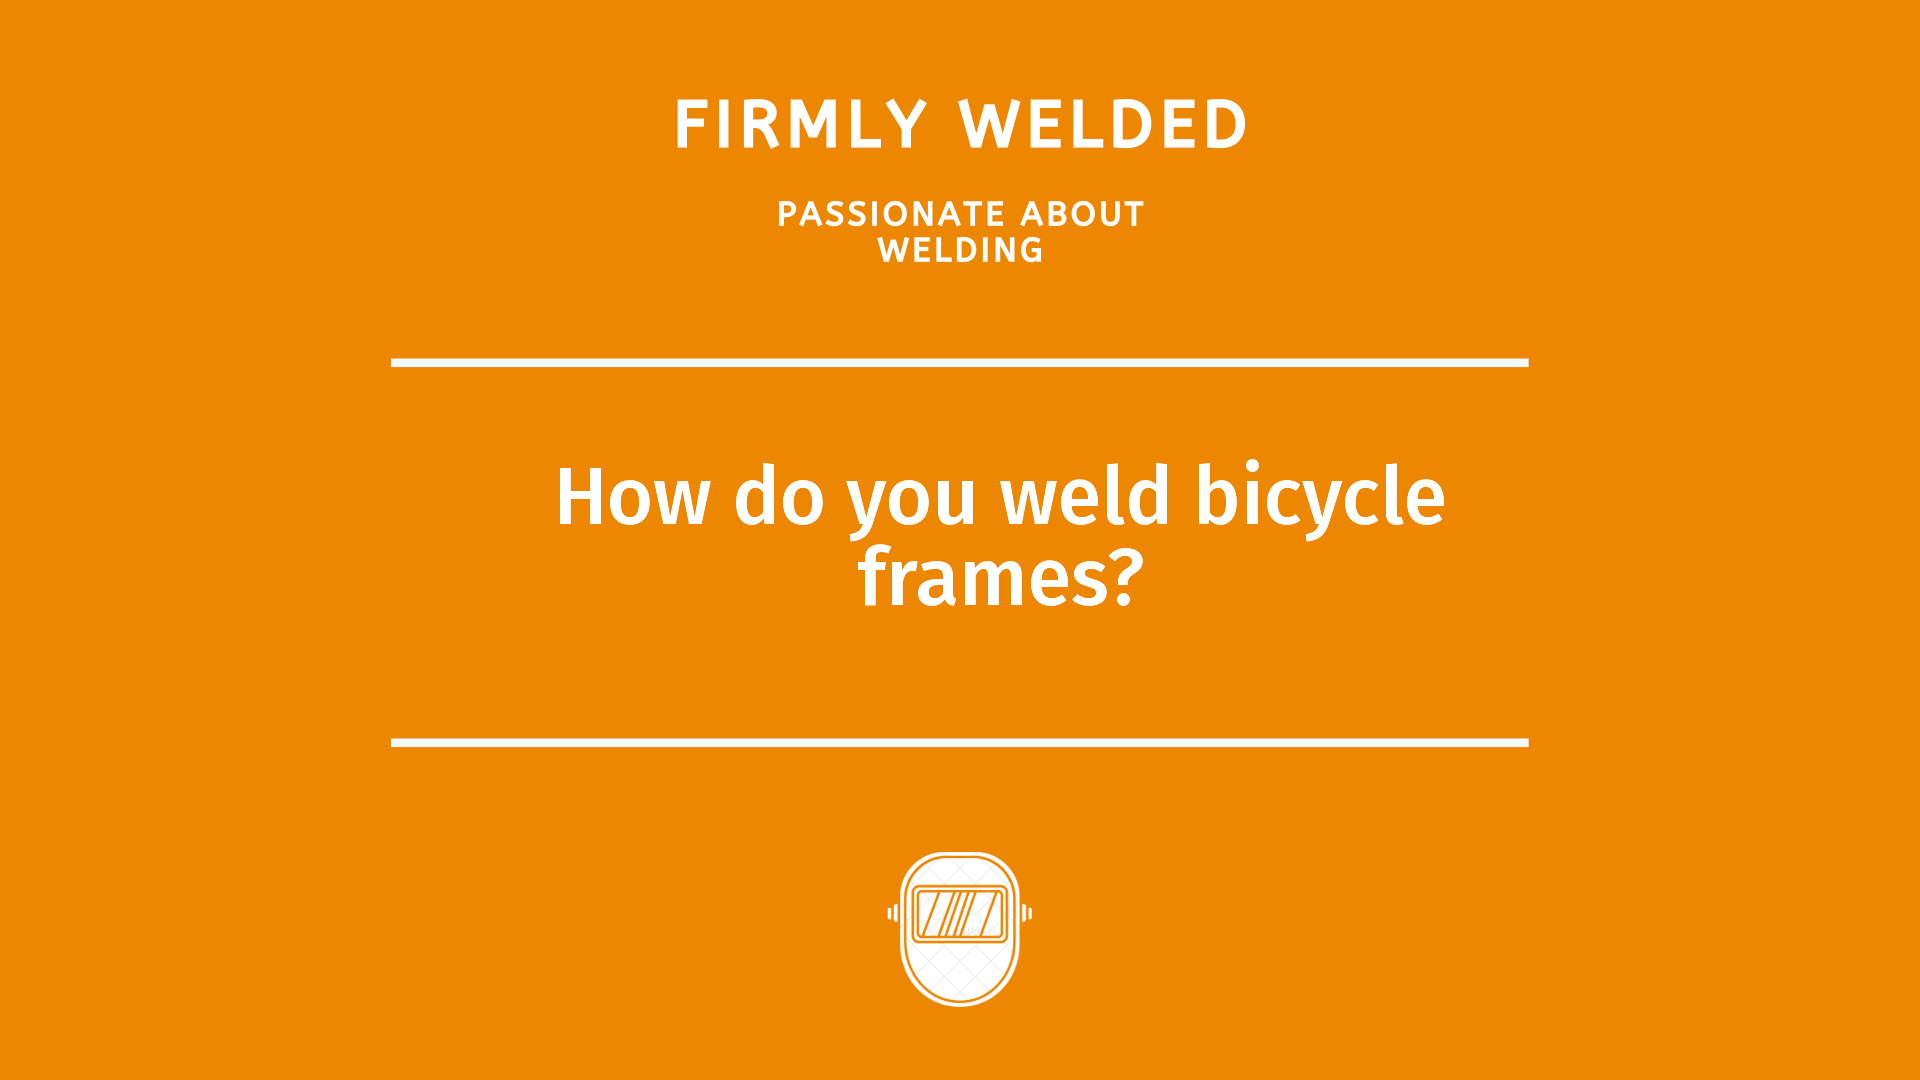 How do you weld bicycle frames?